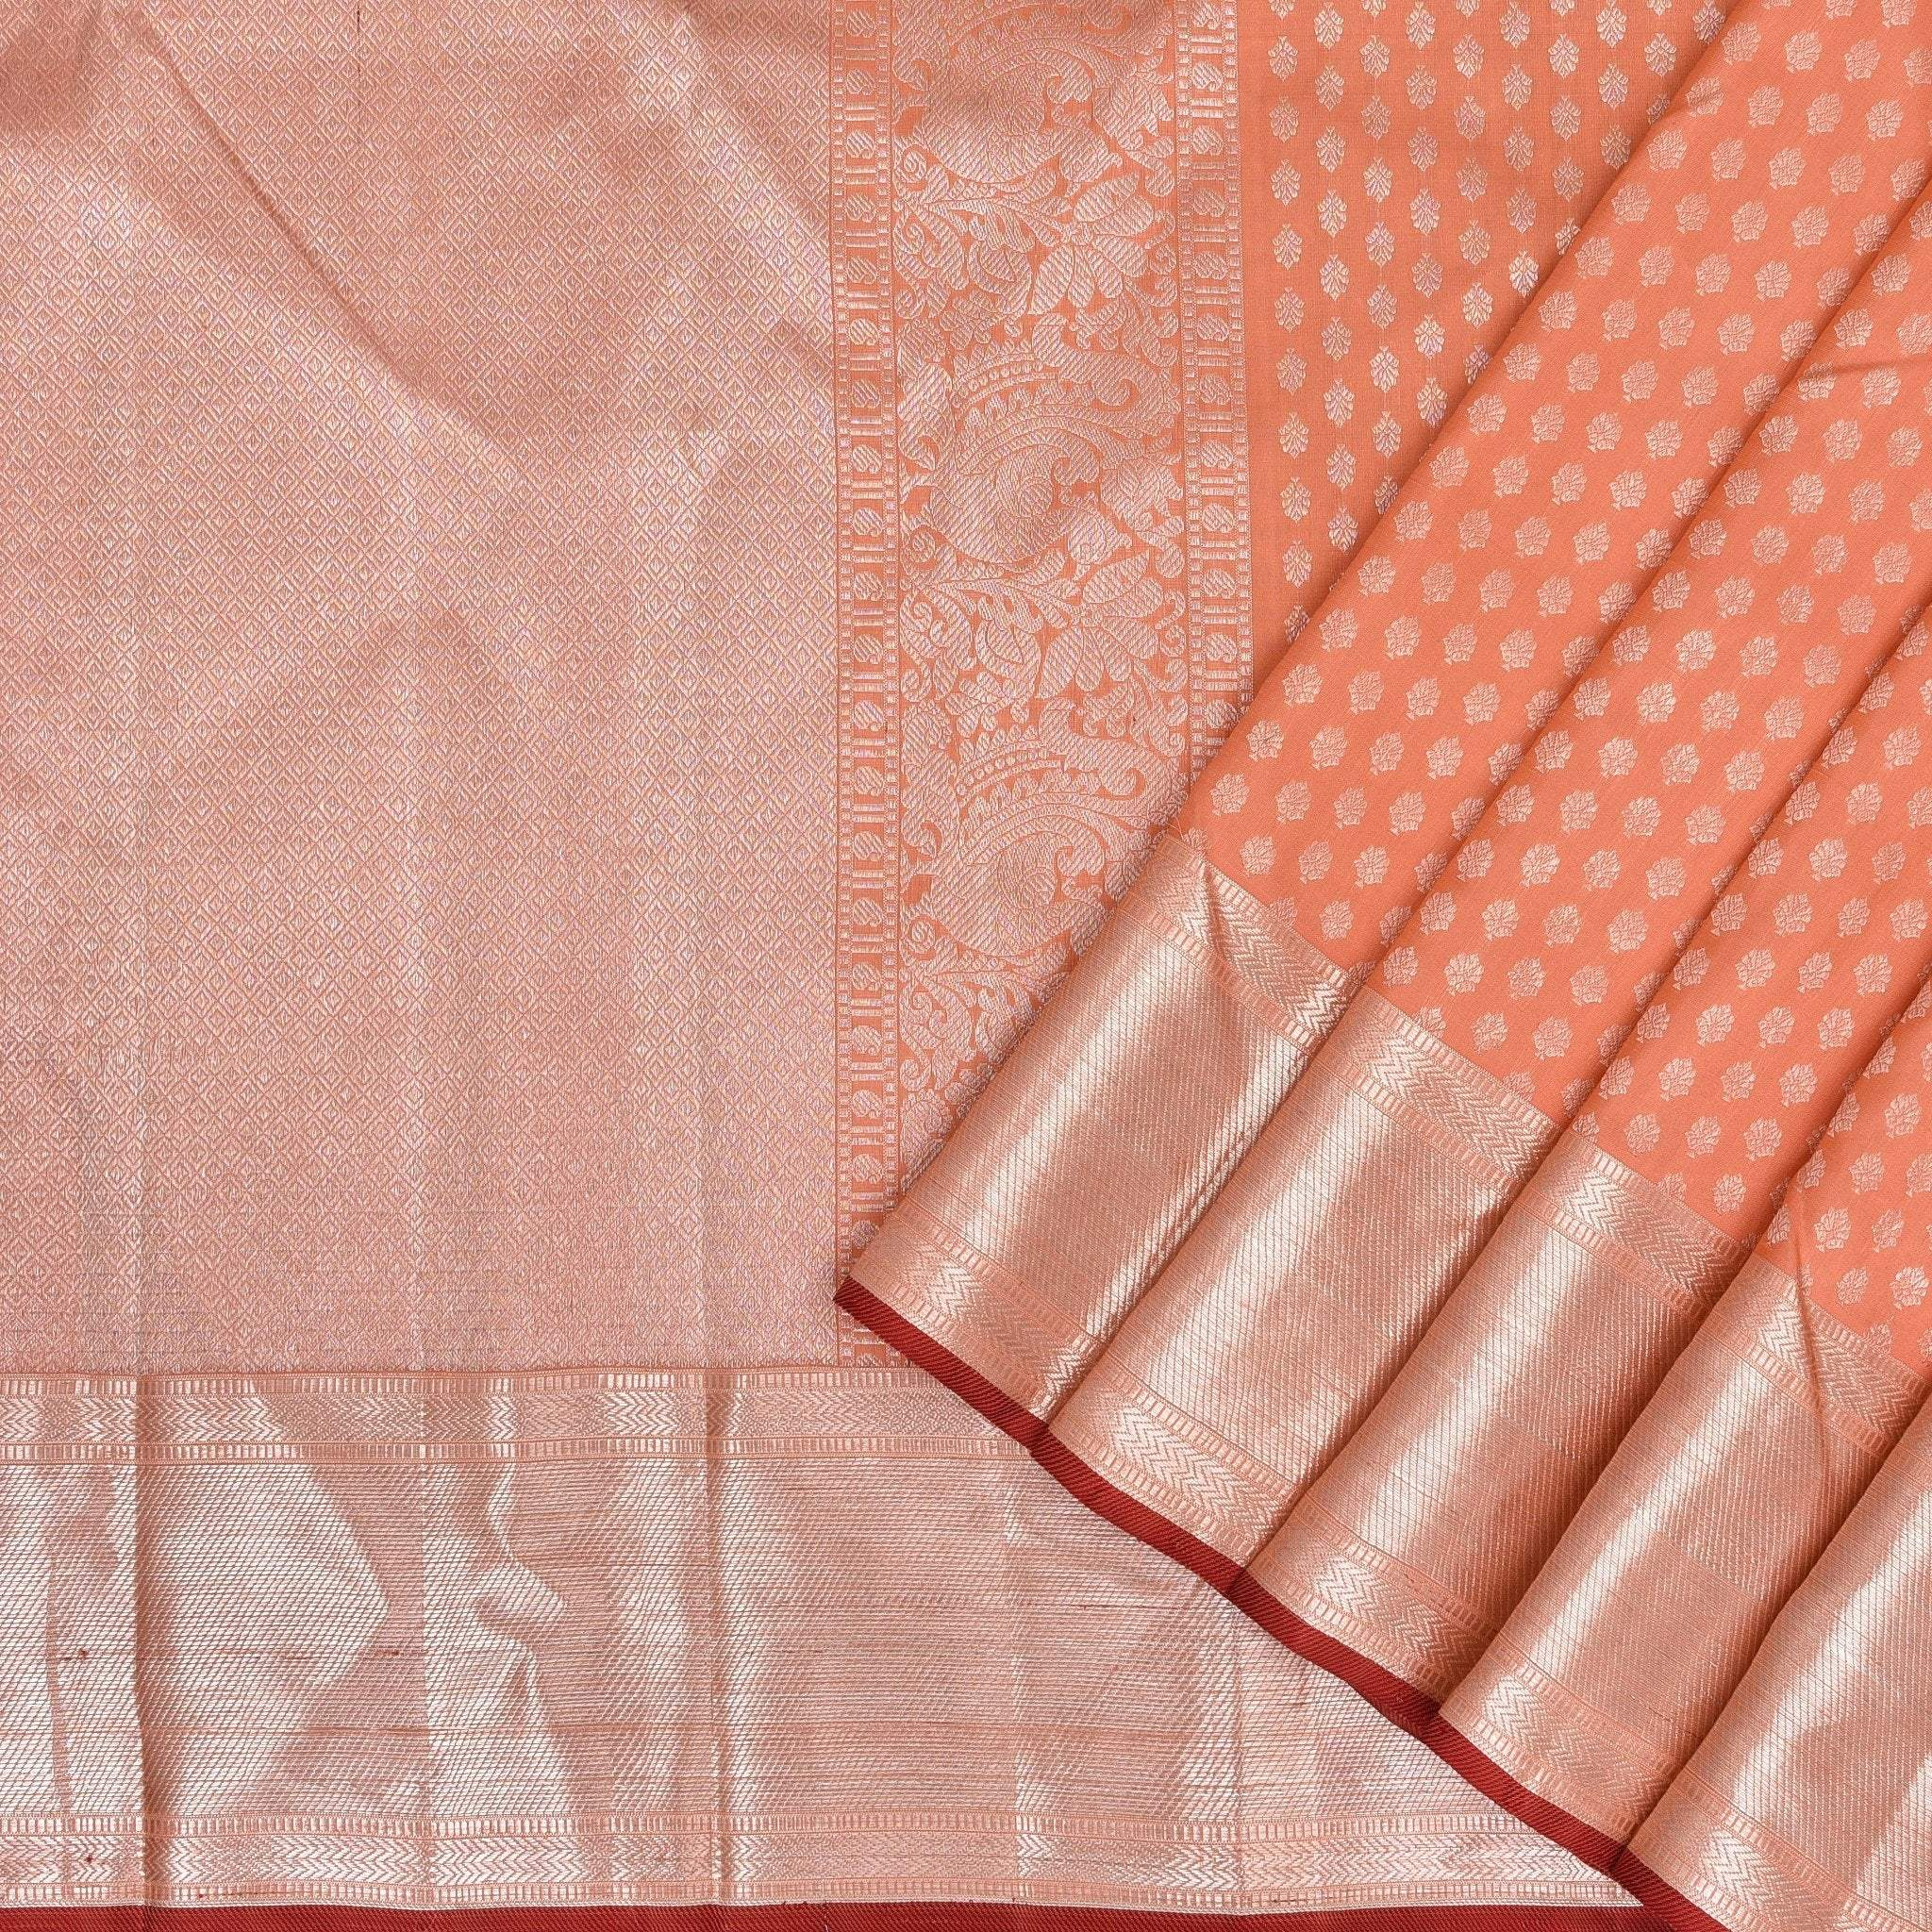 Cantaloupe-Orange-Handloom-Kanjivaram-Silk-Saree